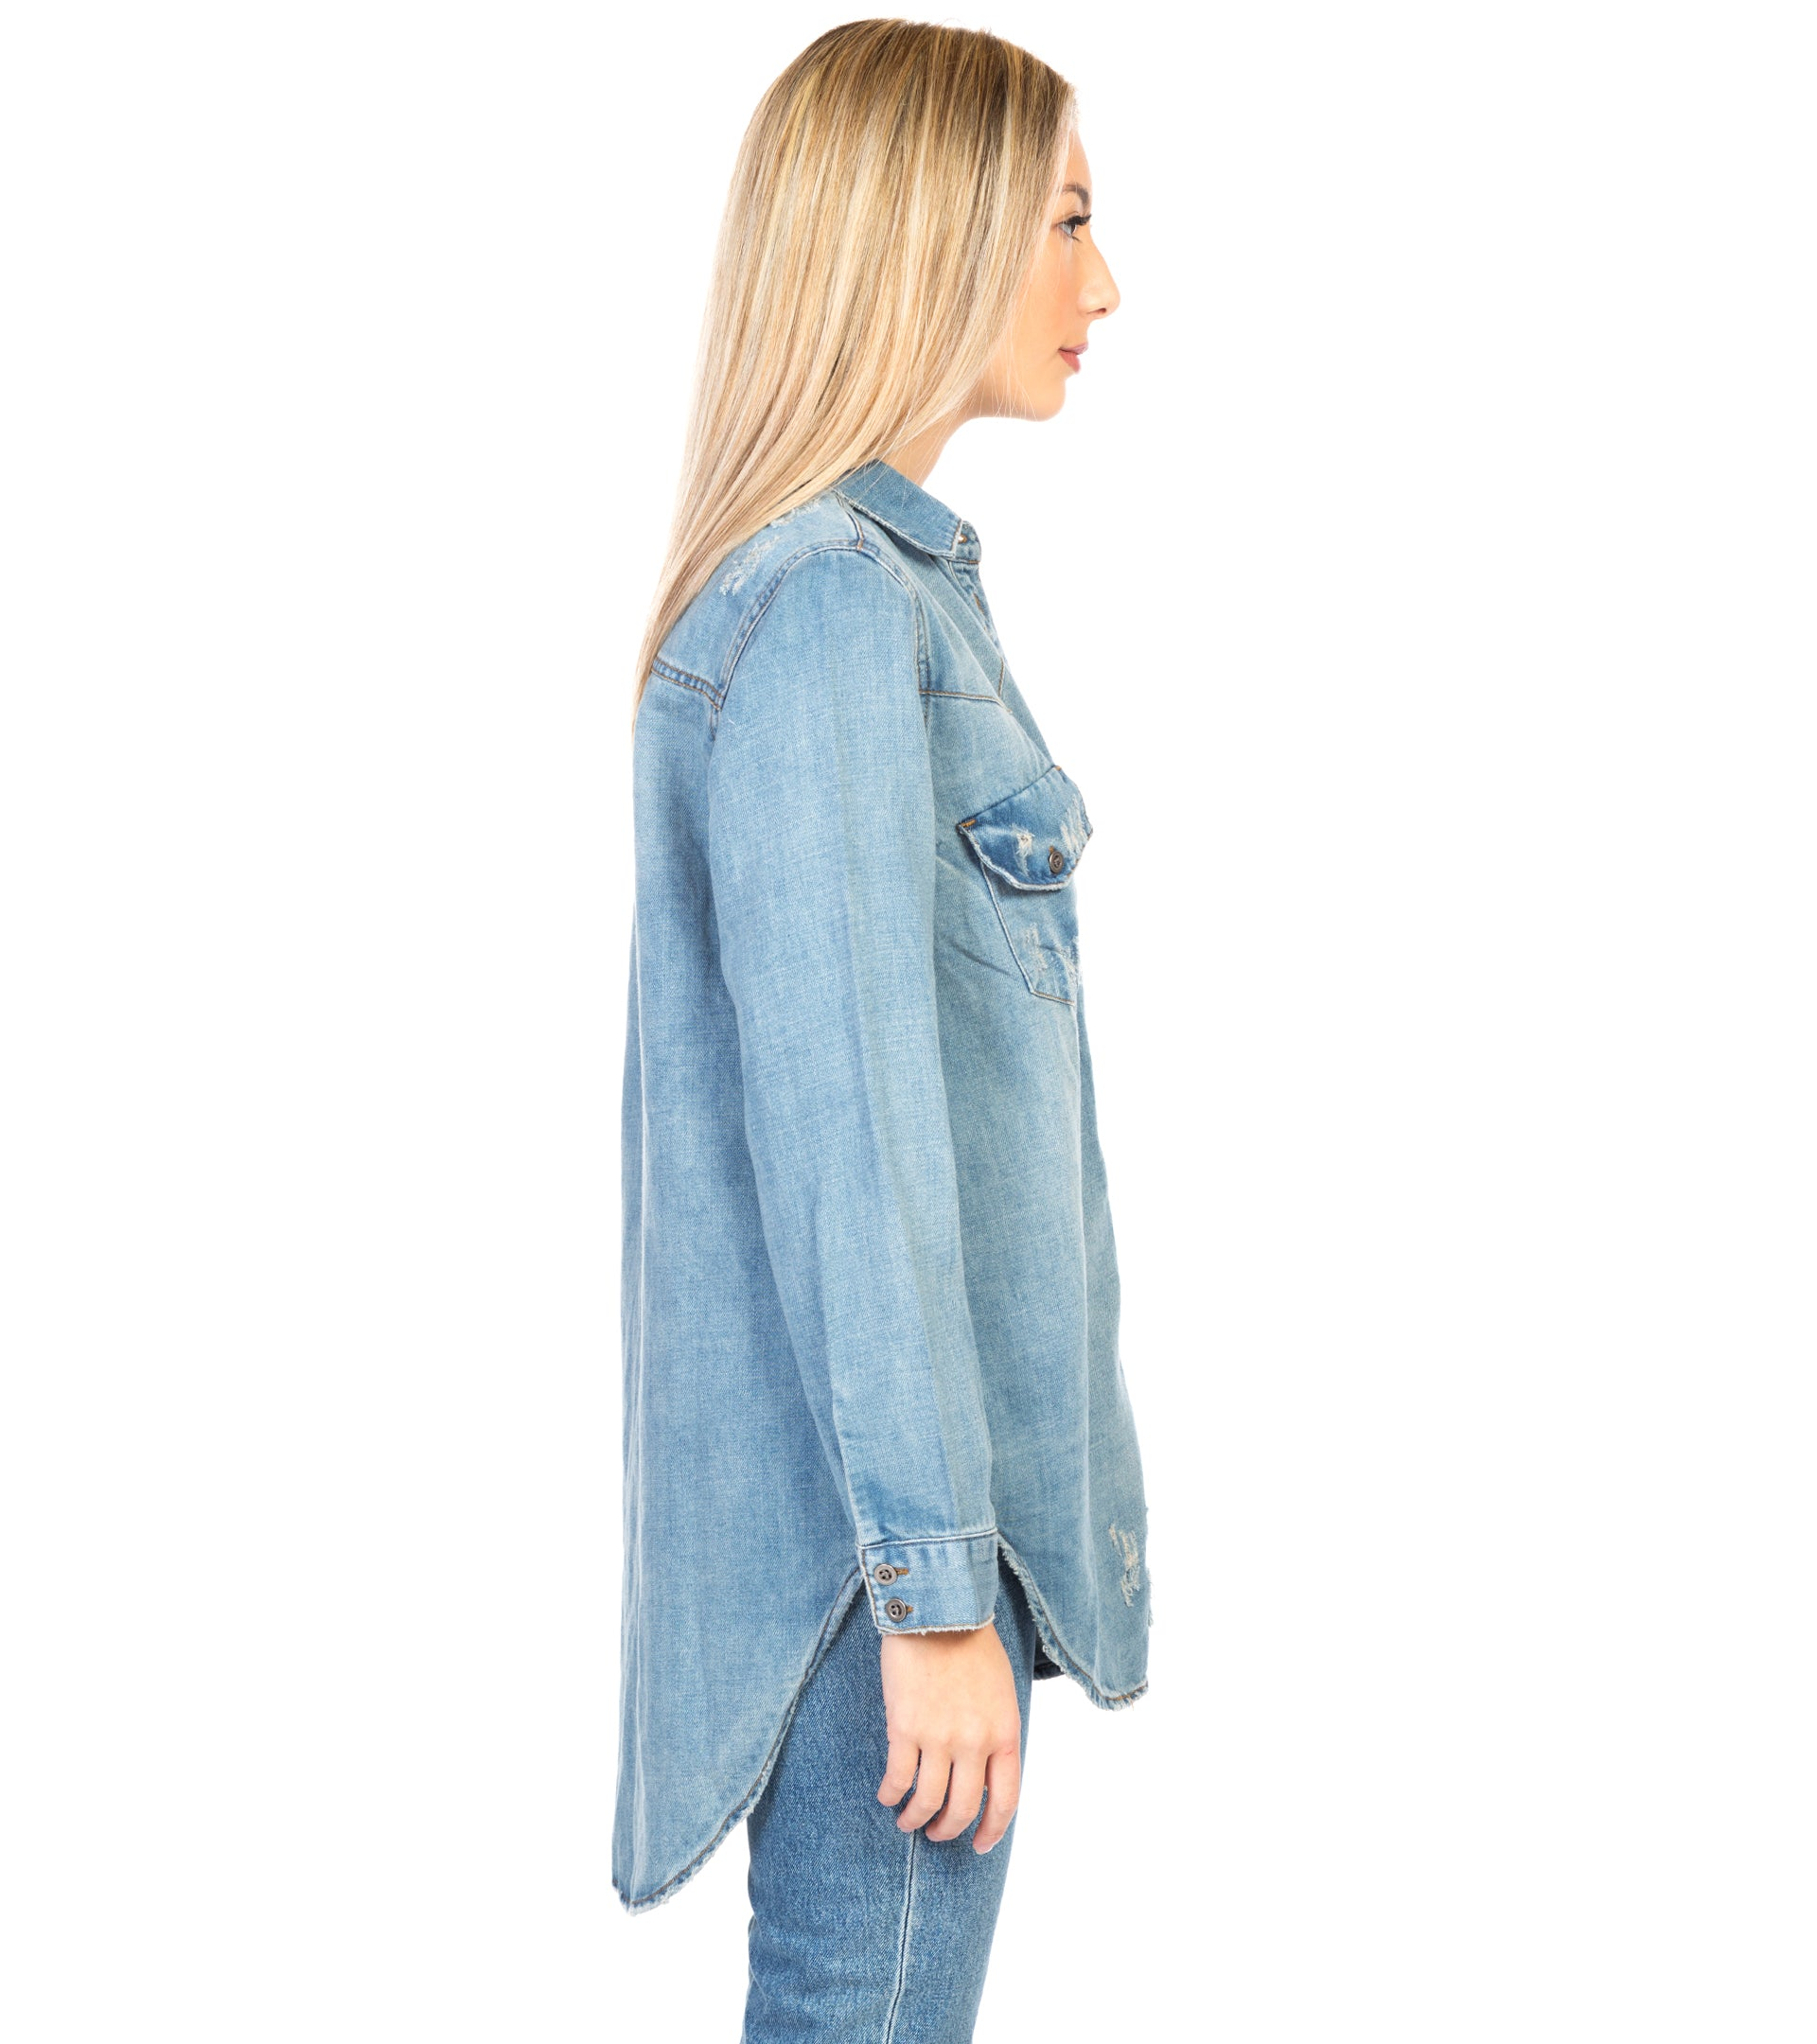 NEW VINTAGE DENIM SHIRT